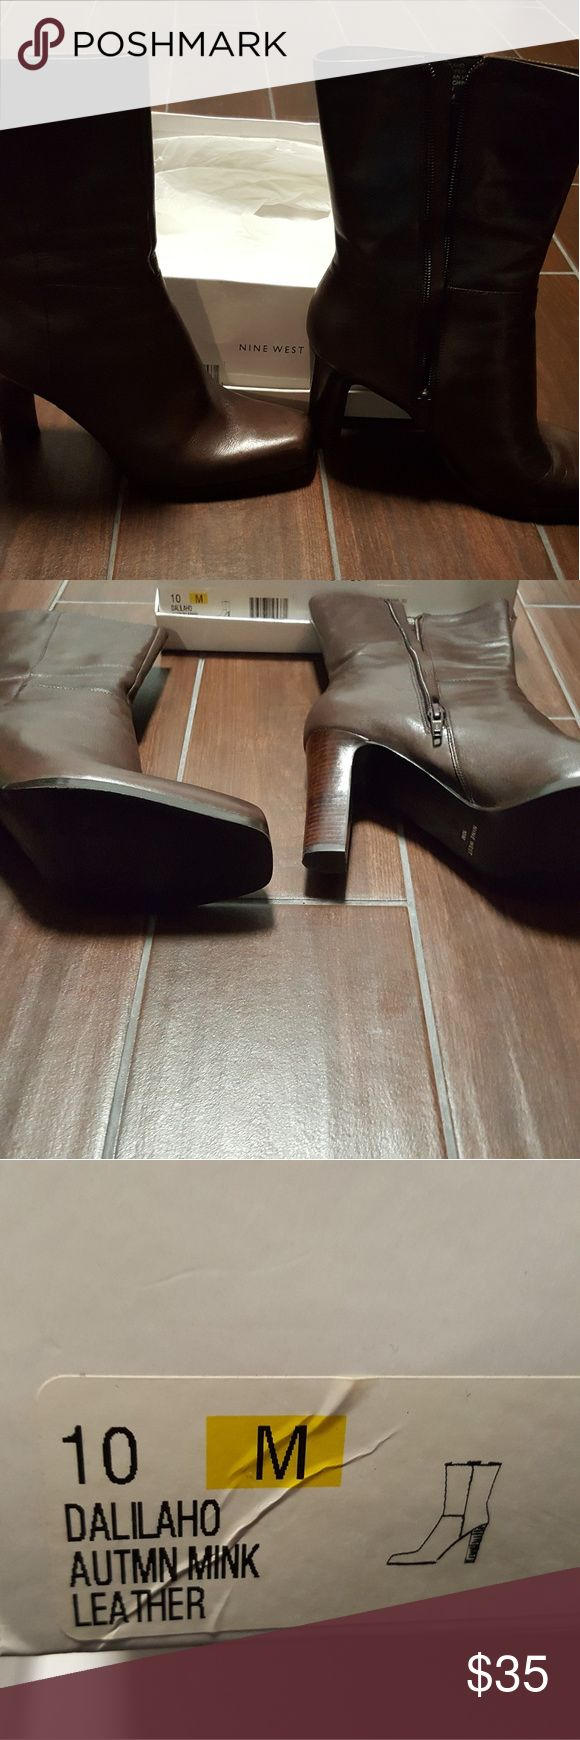 Nine West boots Nine West autumn mink leather boots. 3 inch heel. Excellent condition. Size 10. Nine West Shoes Heeled Boots